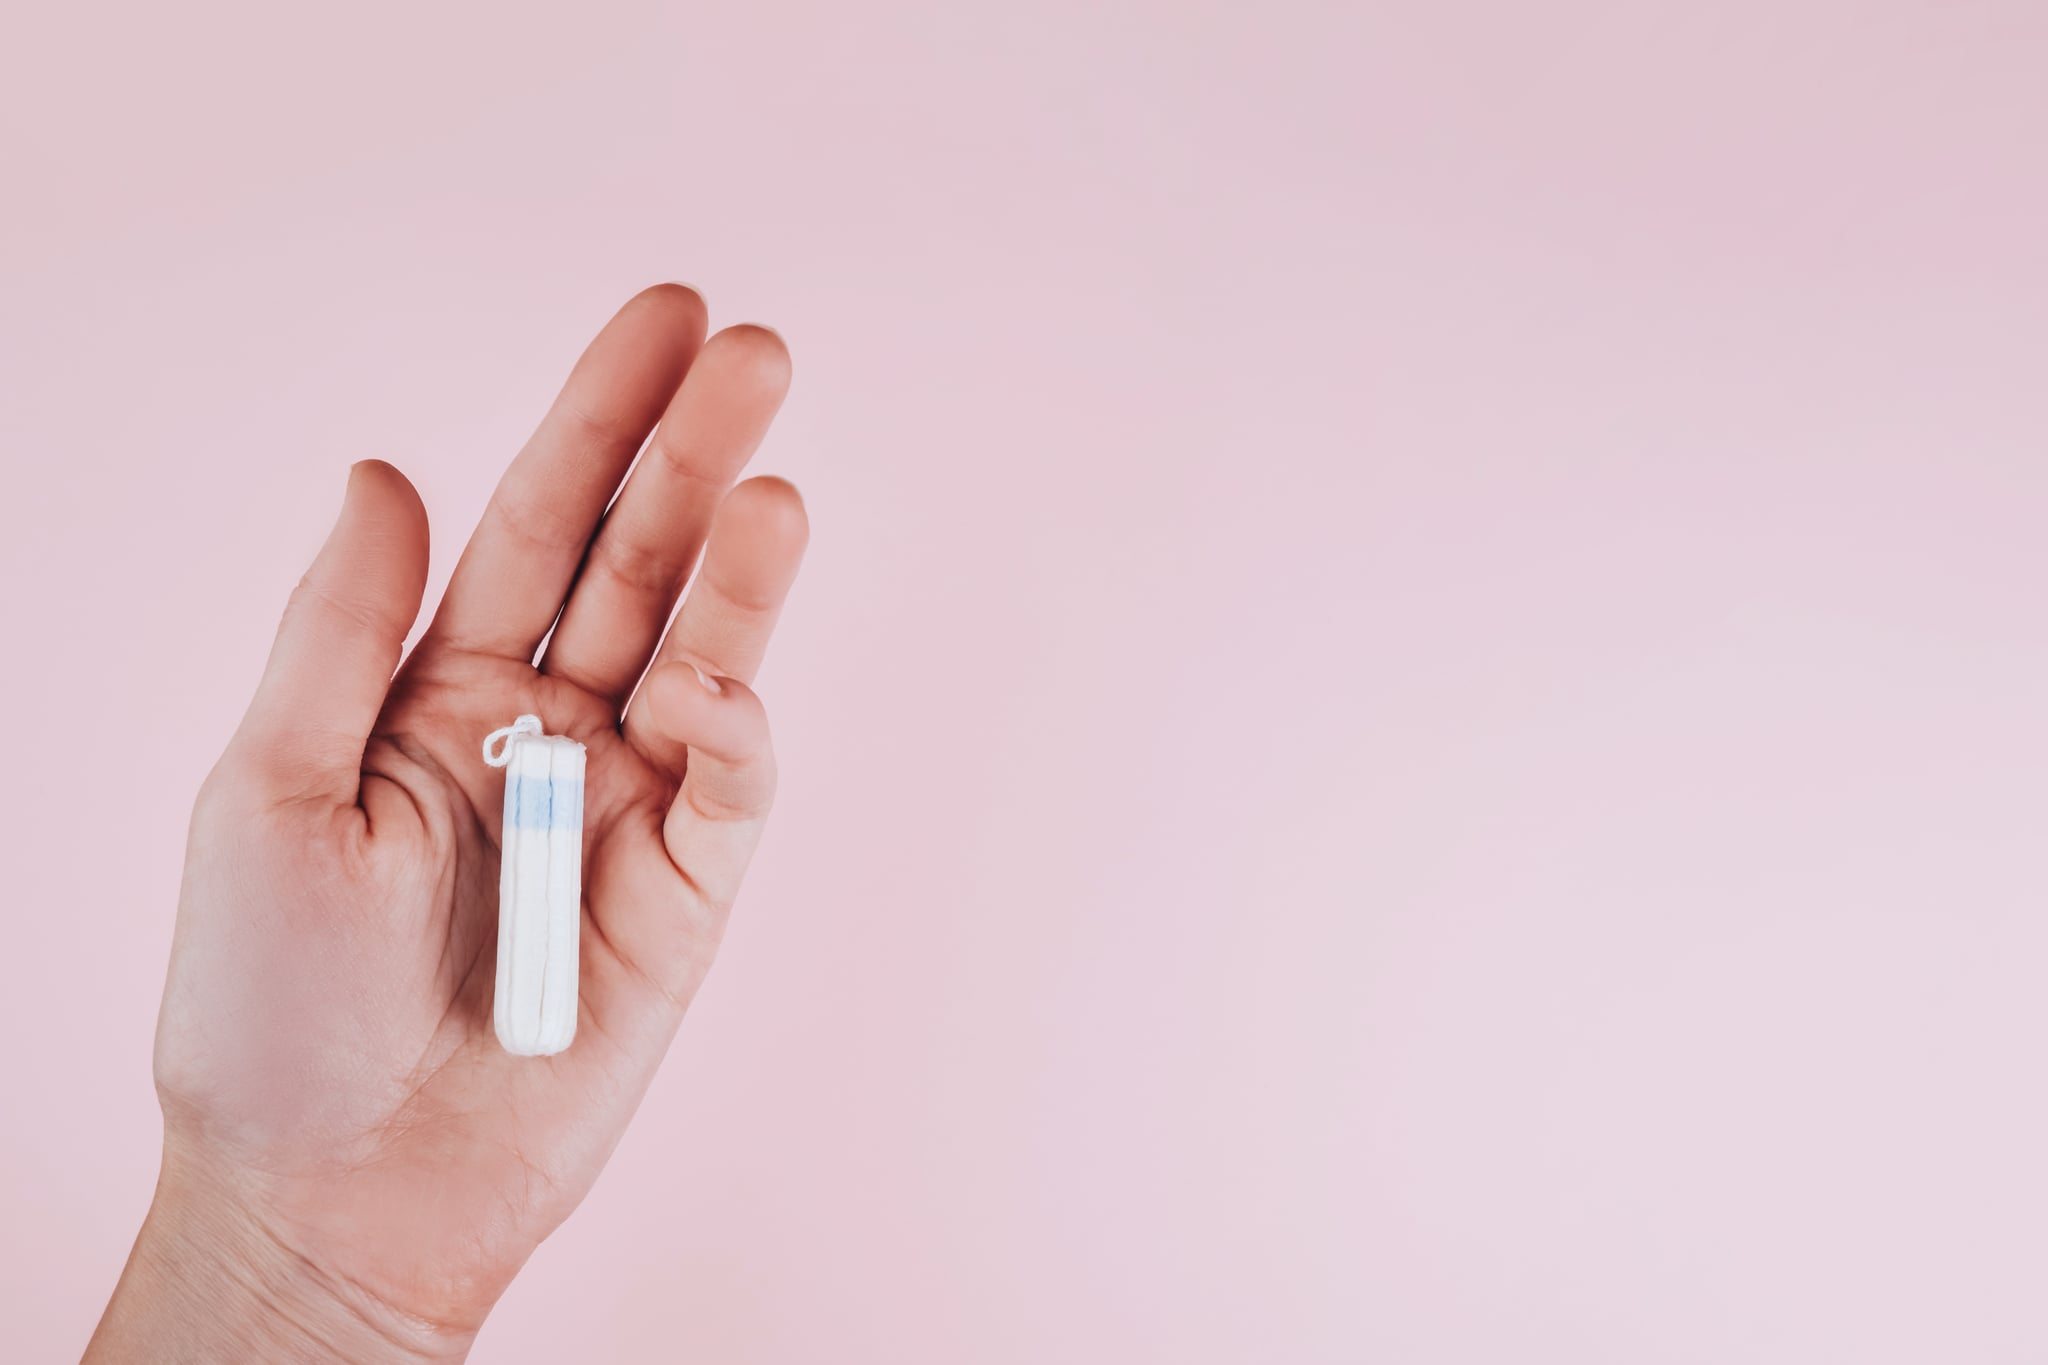 White tampon in a female hand on a pink background with place for text